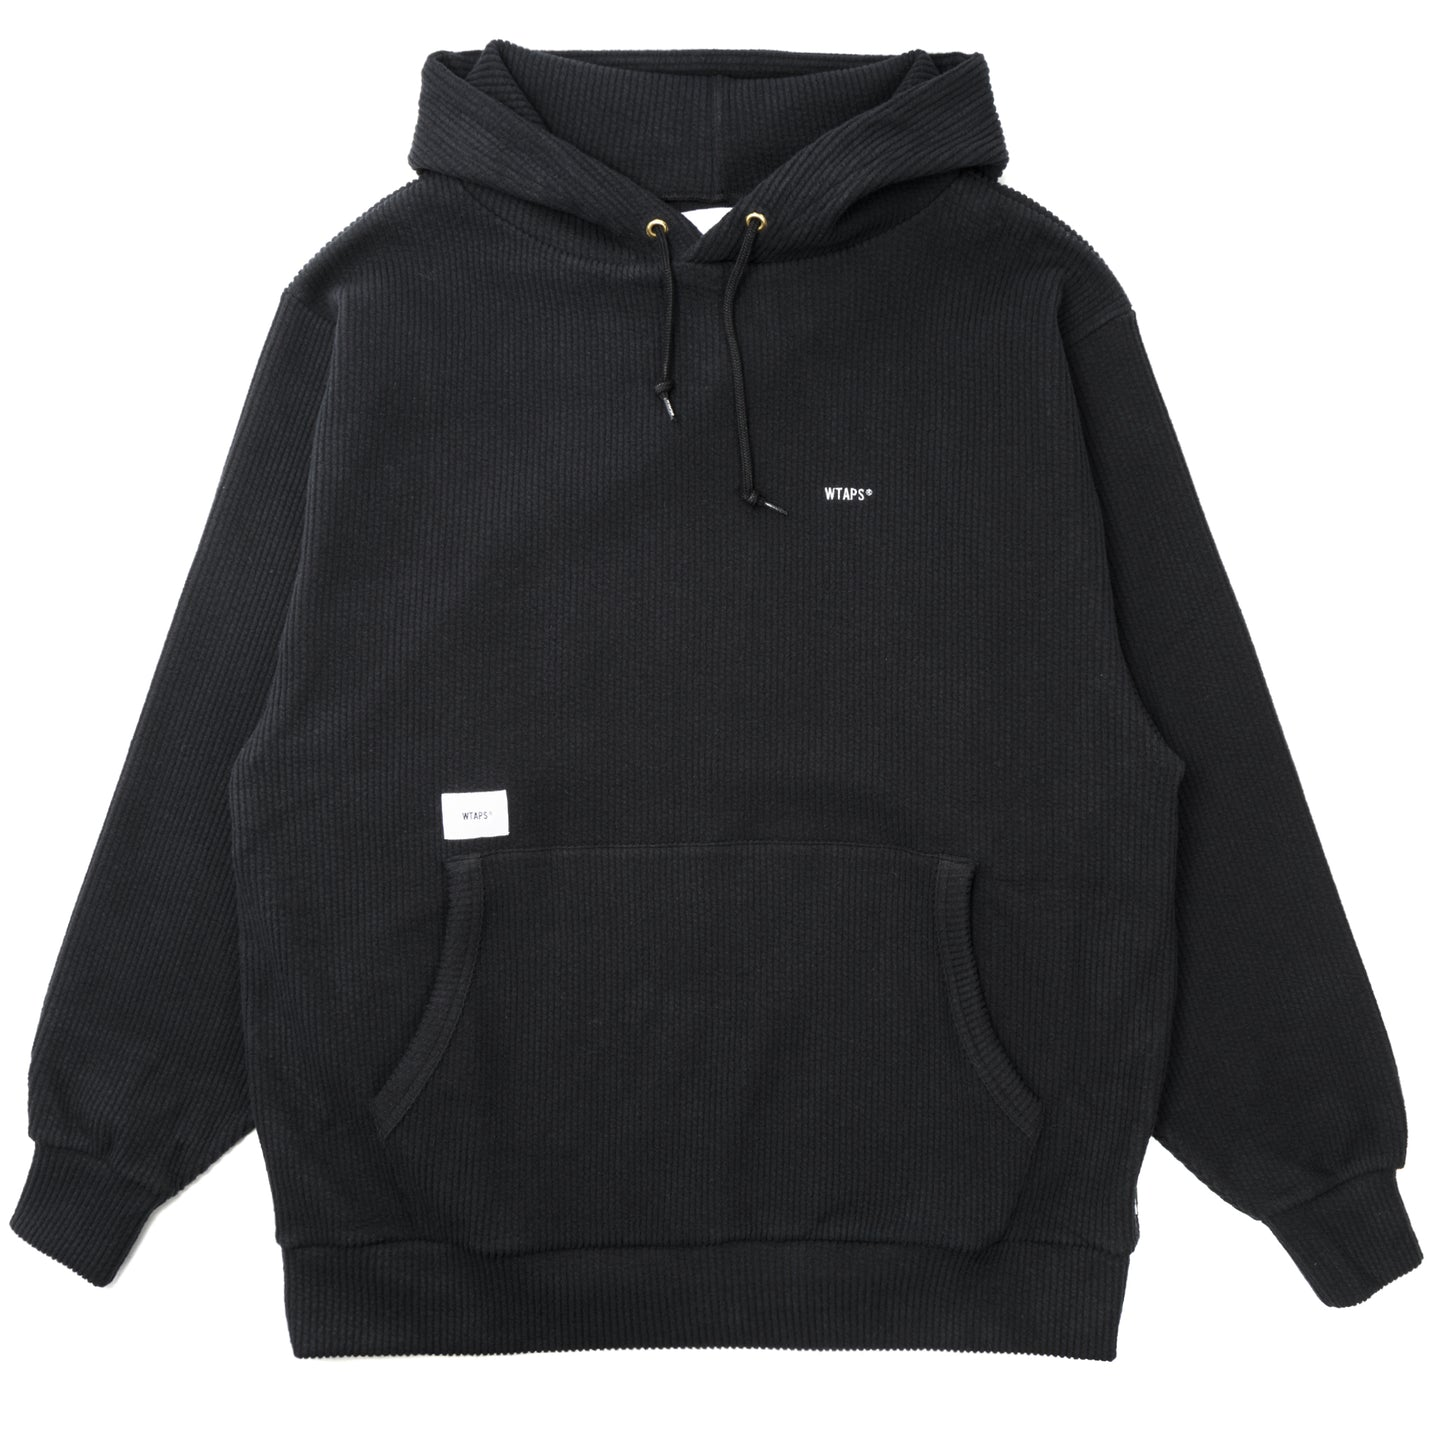 WTAPS Sign Hooded Sweatshirt Black